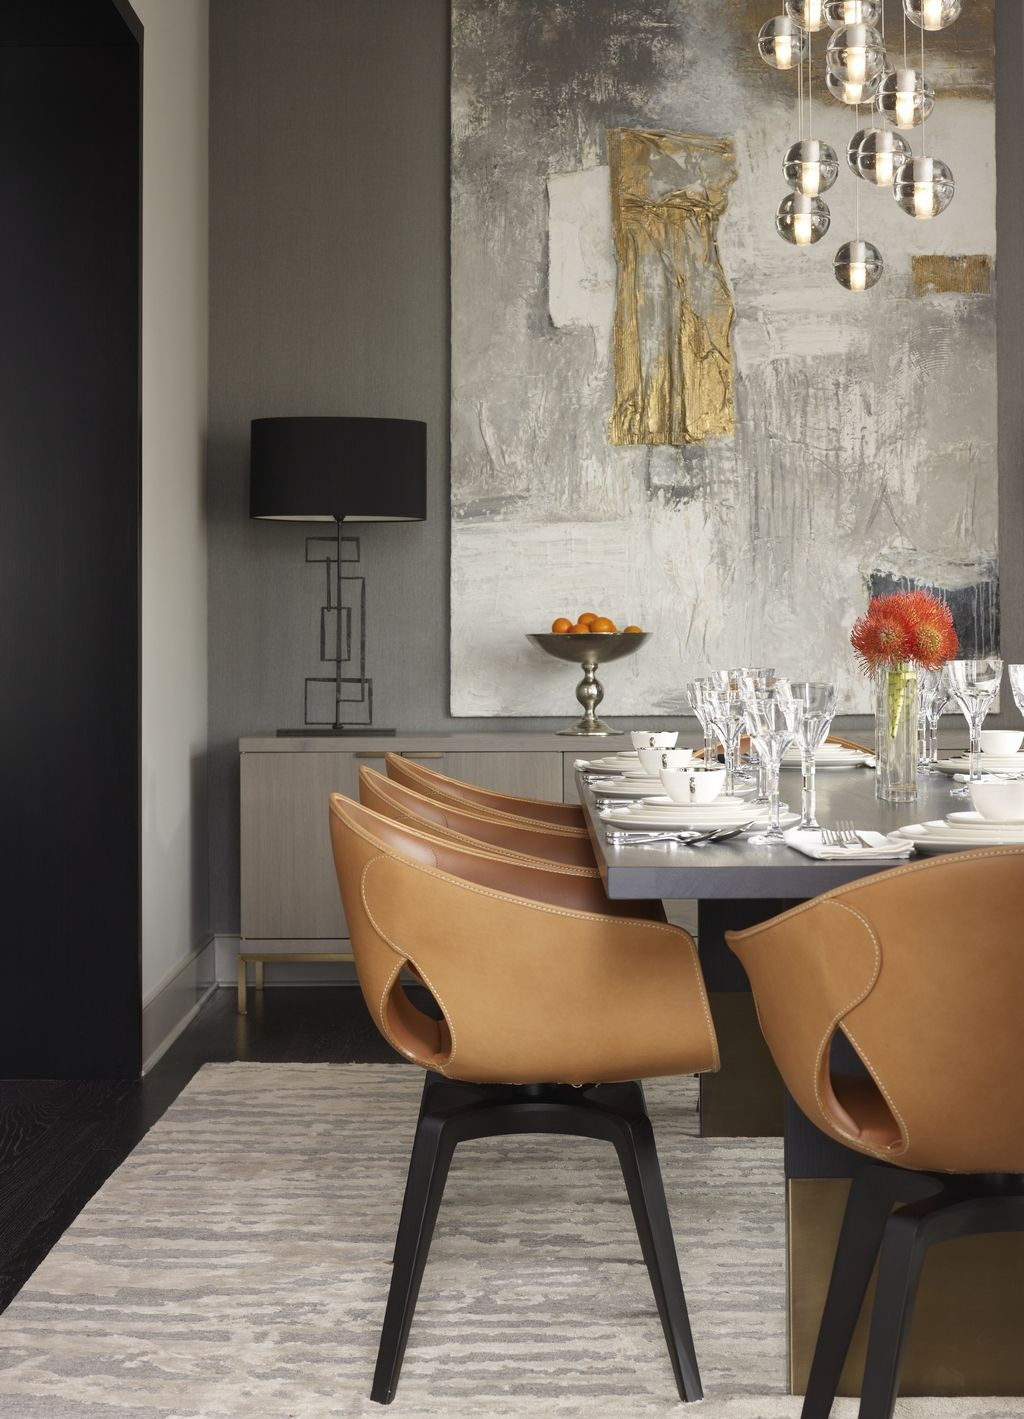 6 Tips On How to Decorate The Dining Room by A Professional Designer dining room 6 Tips On How to Decorate The Dining Room by A Professional Designer 8 6 Tips On How to Decorate The Dining Room by A Professional Designer